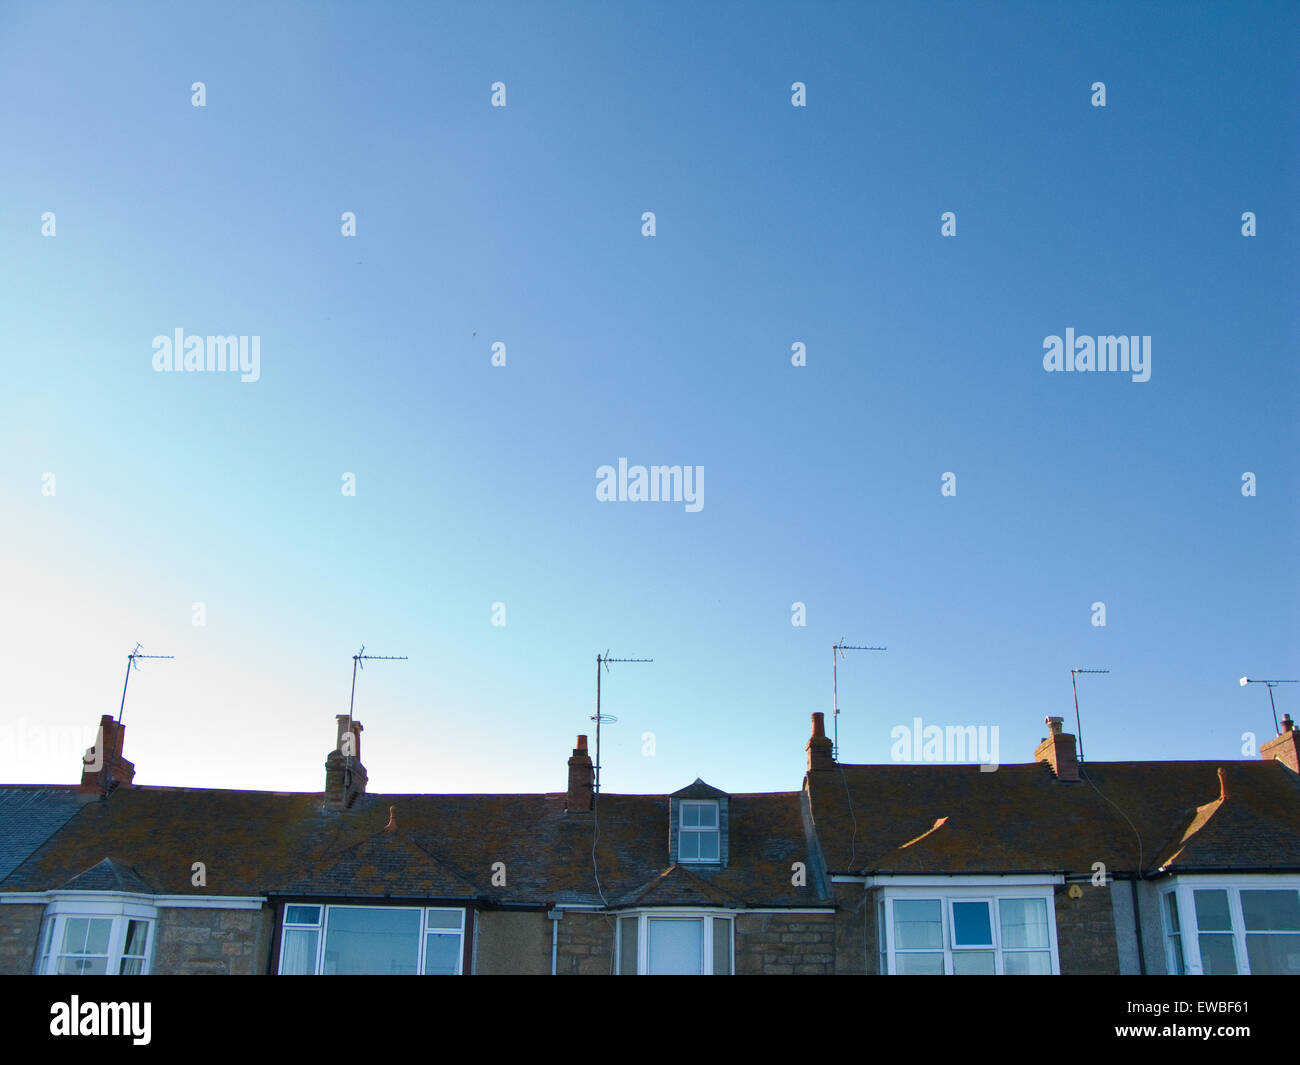 Row of terraced houses with television aerials and blue sky - Stock Image